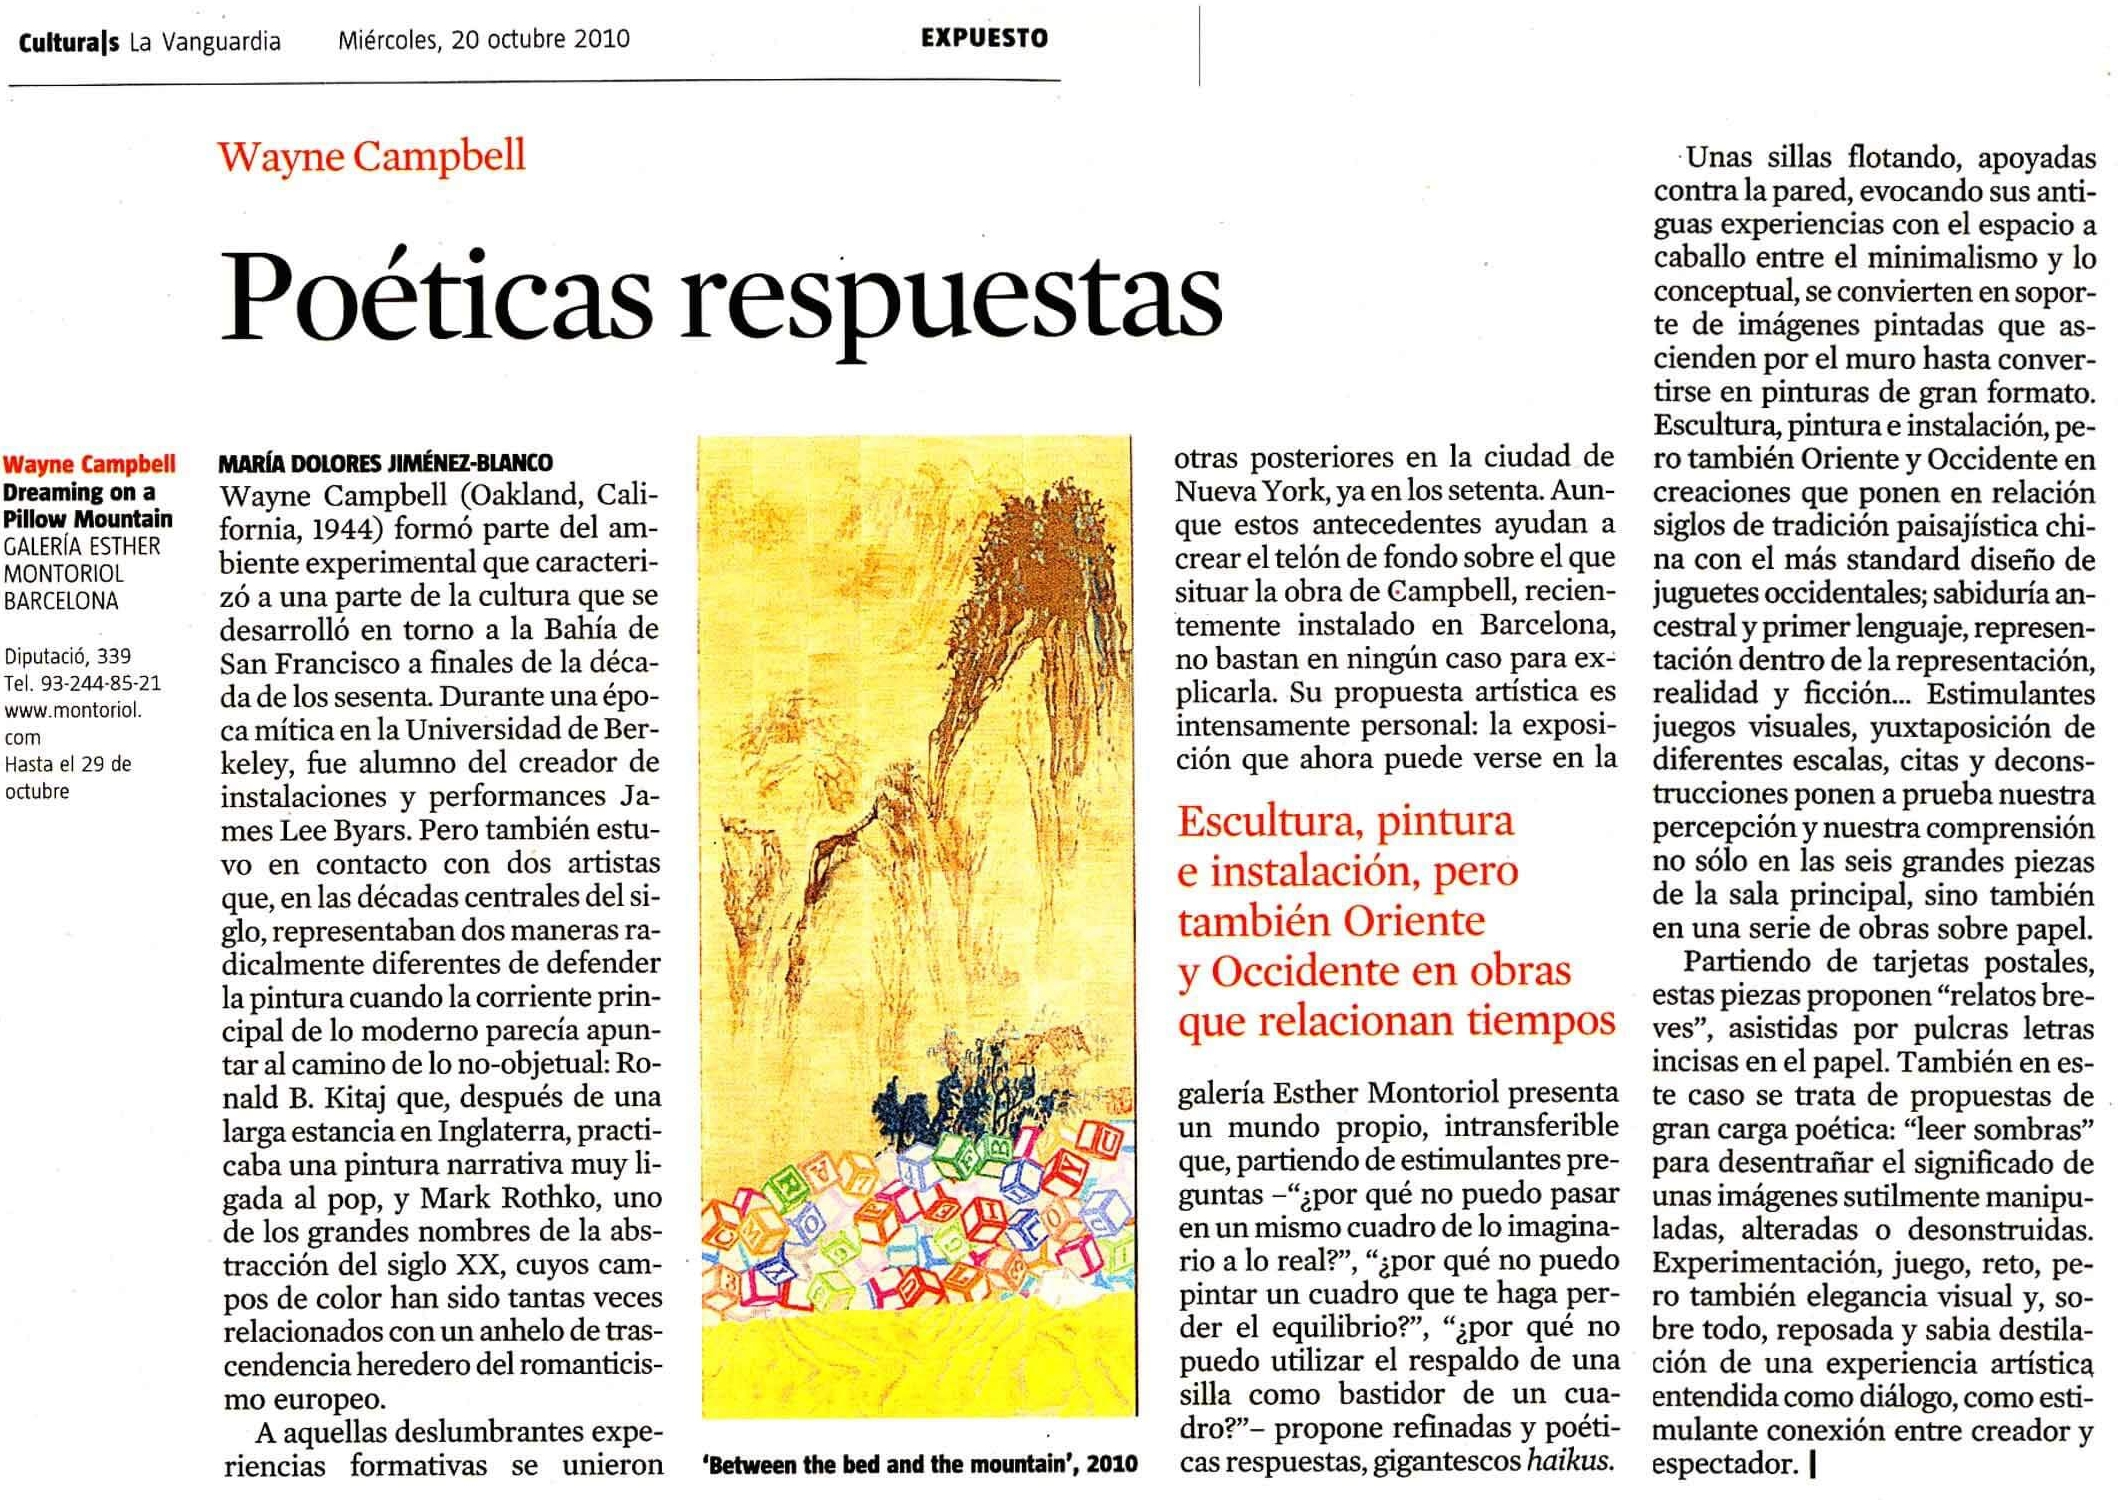 La Vanguardia Culturals Wayne E Campbell feature 10 Oct 2010.jpg